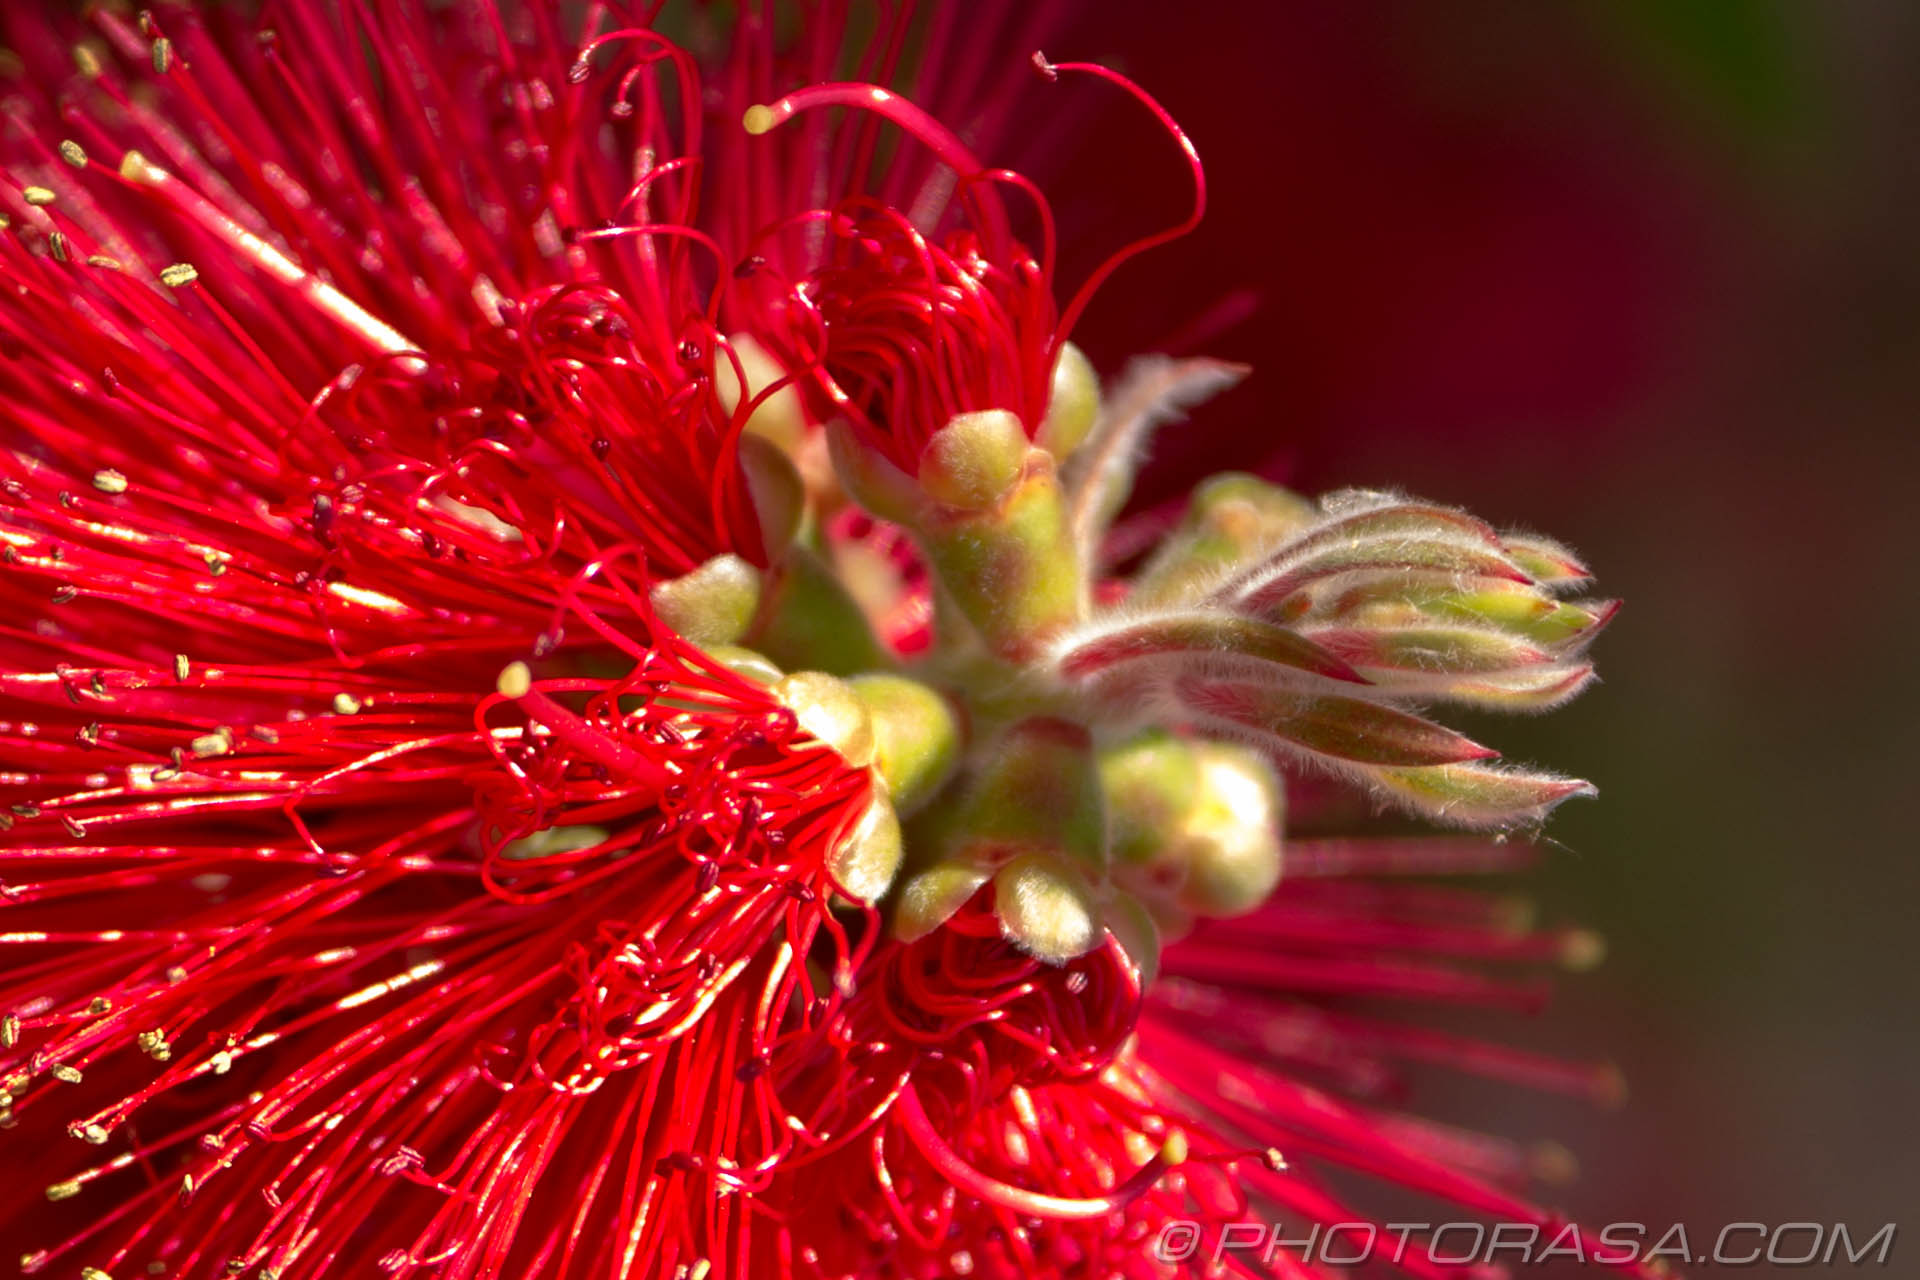 http://photorasa.com/nature/strange-exotic-flowers/attachment/red-spaghetti-flower/